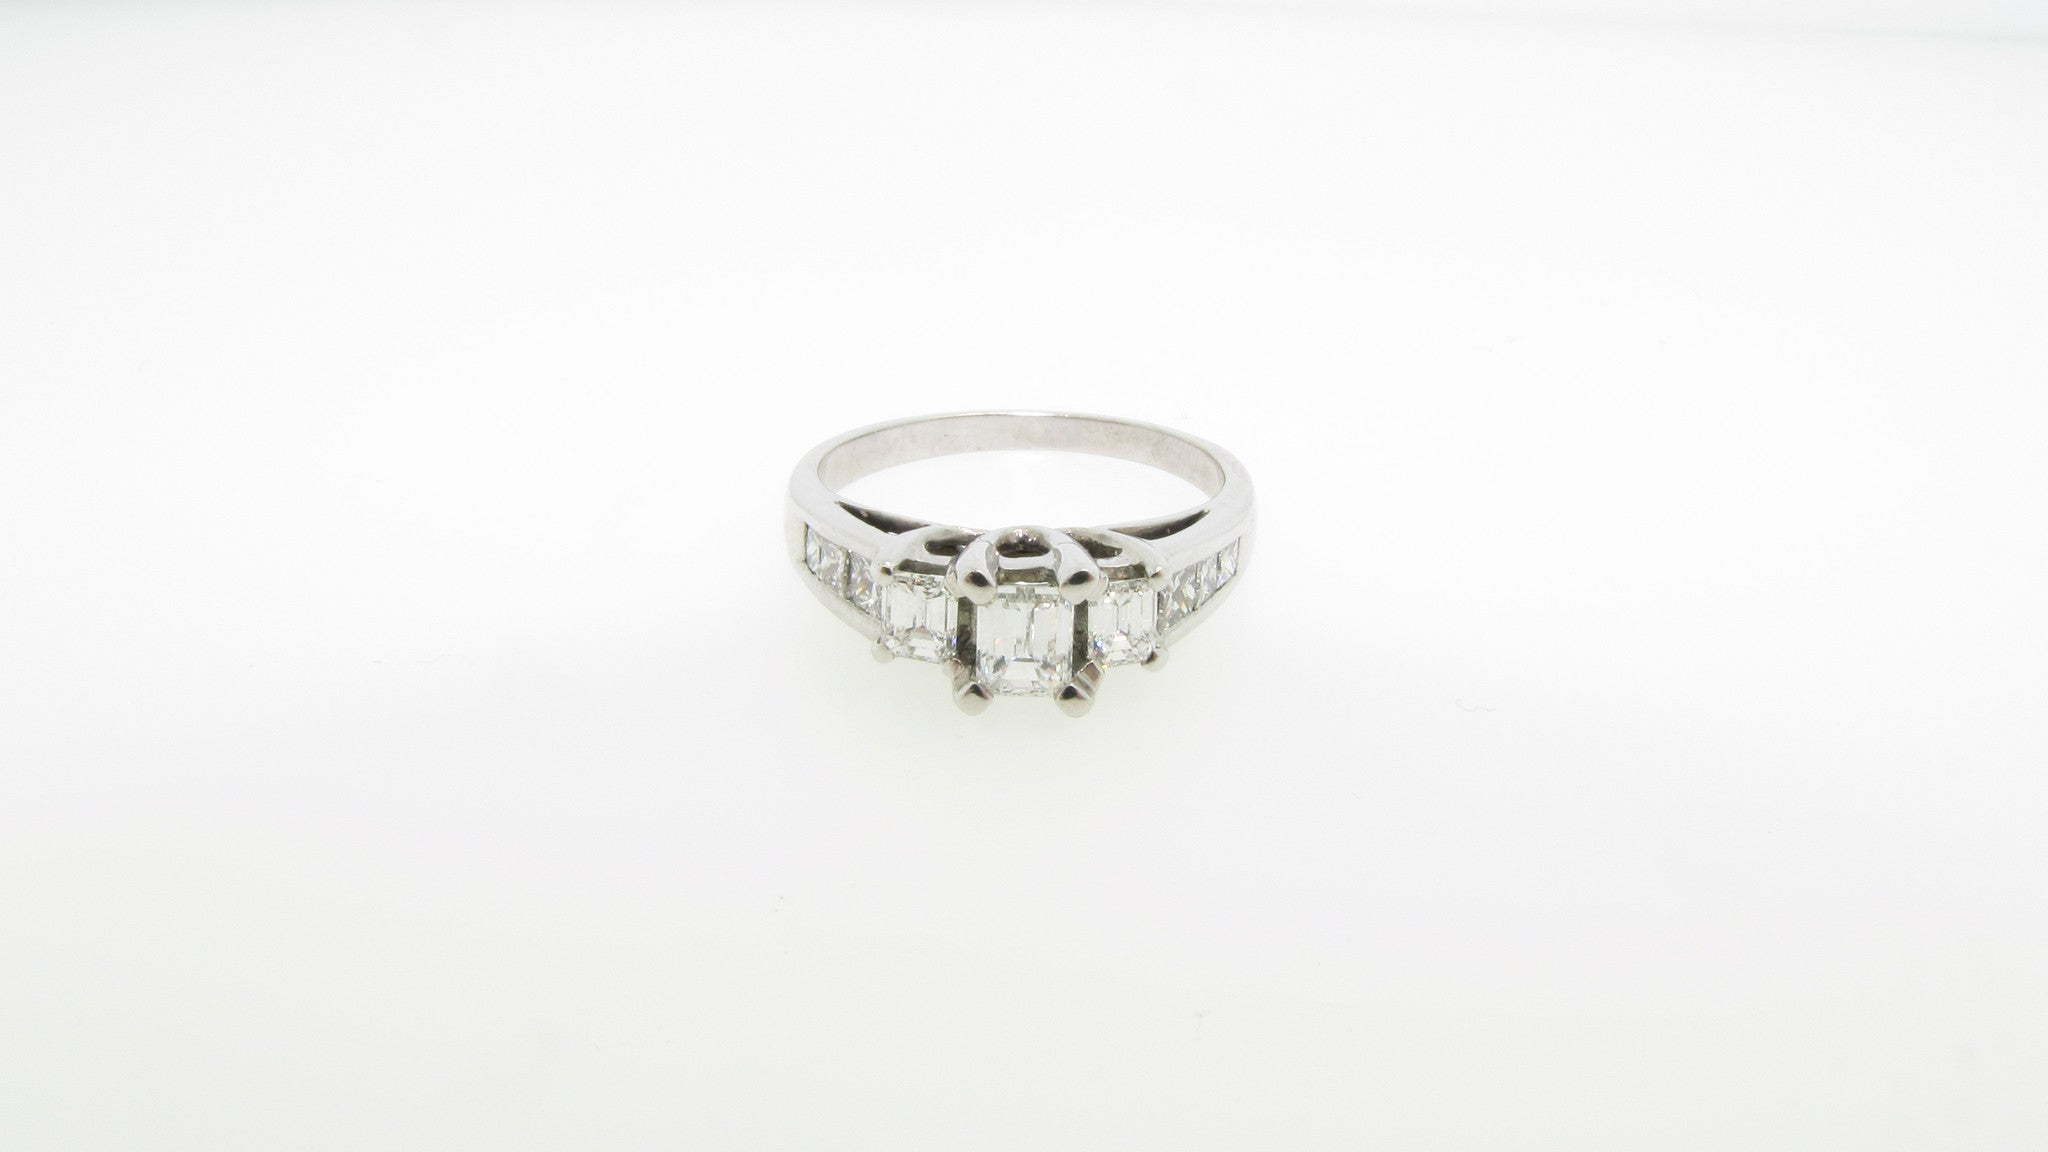 14K White Gold 1.20cttw Emerald Cut Three Stone Diamond Engagement Ring